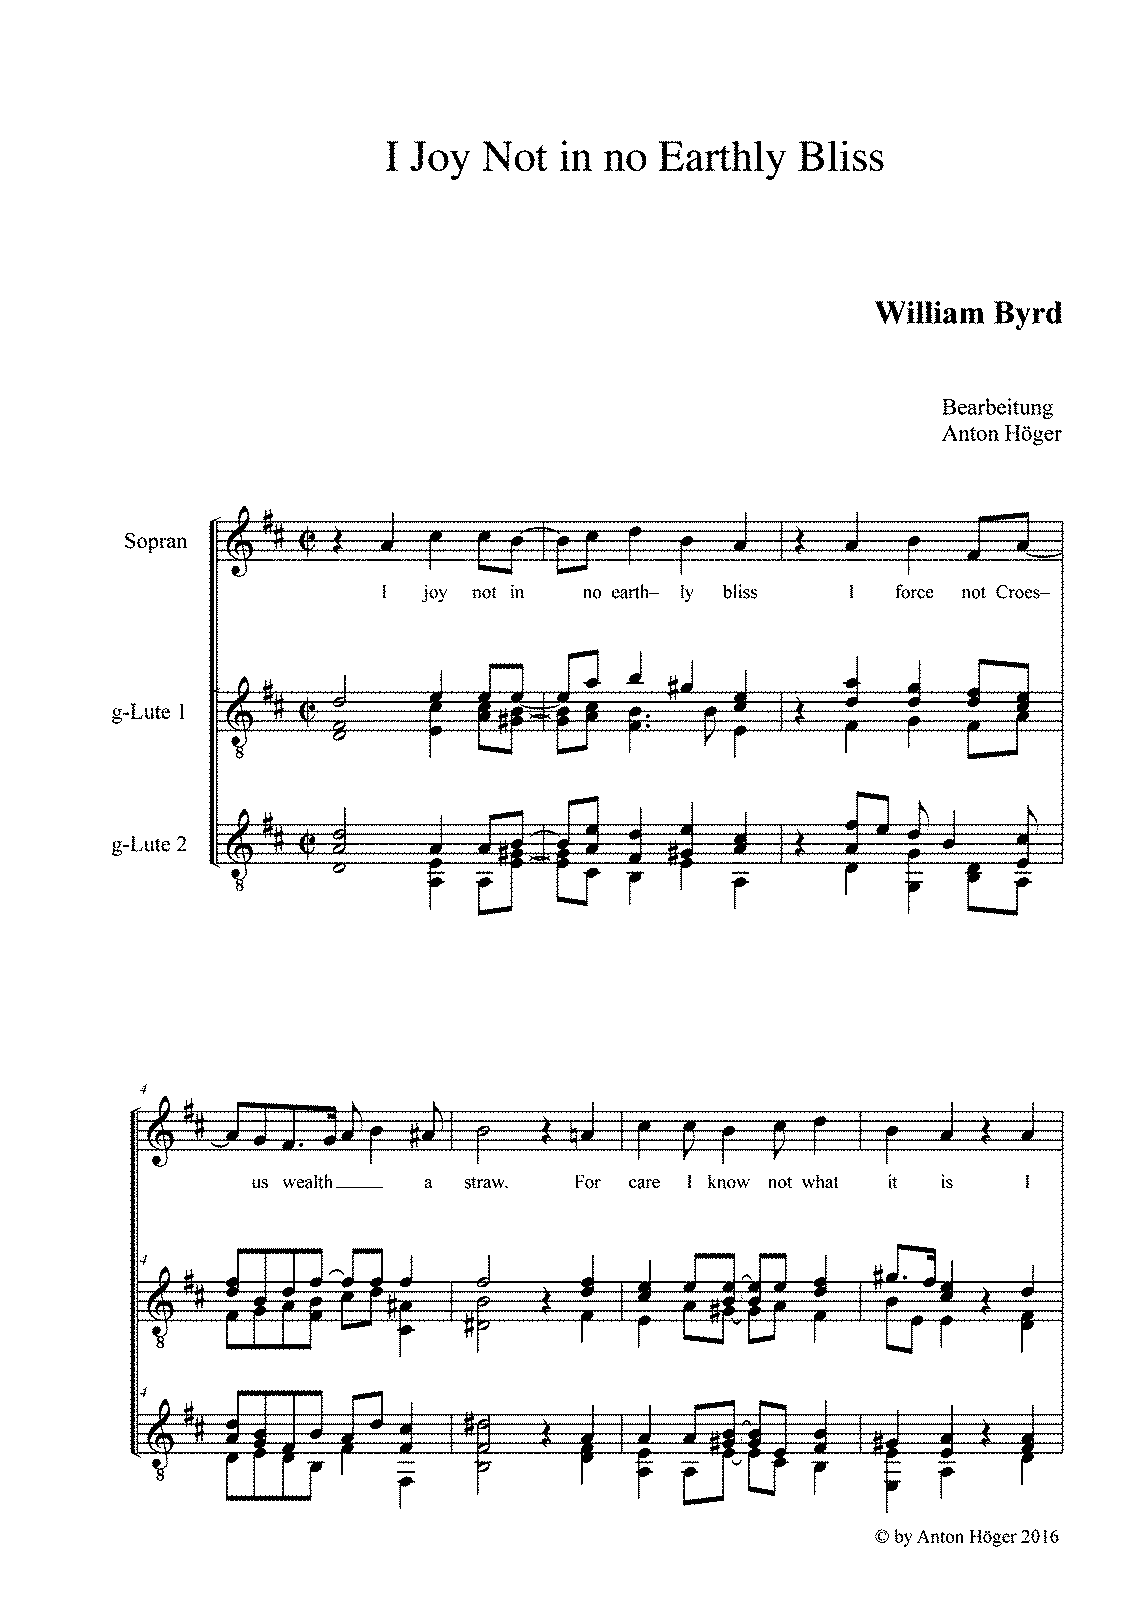 PMLP454927-Byrd, William - I Joy Not in no Earthly Bliss (S & 2Git).pdf